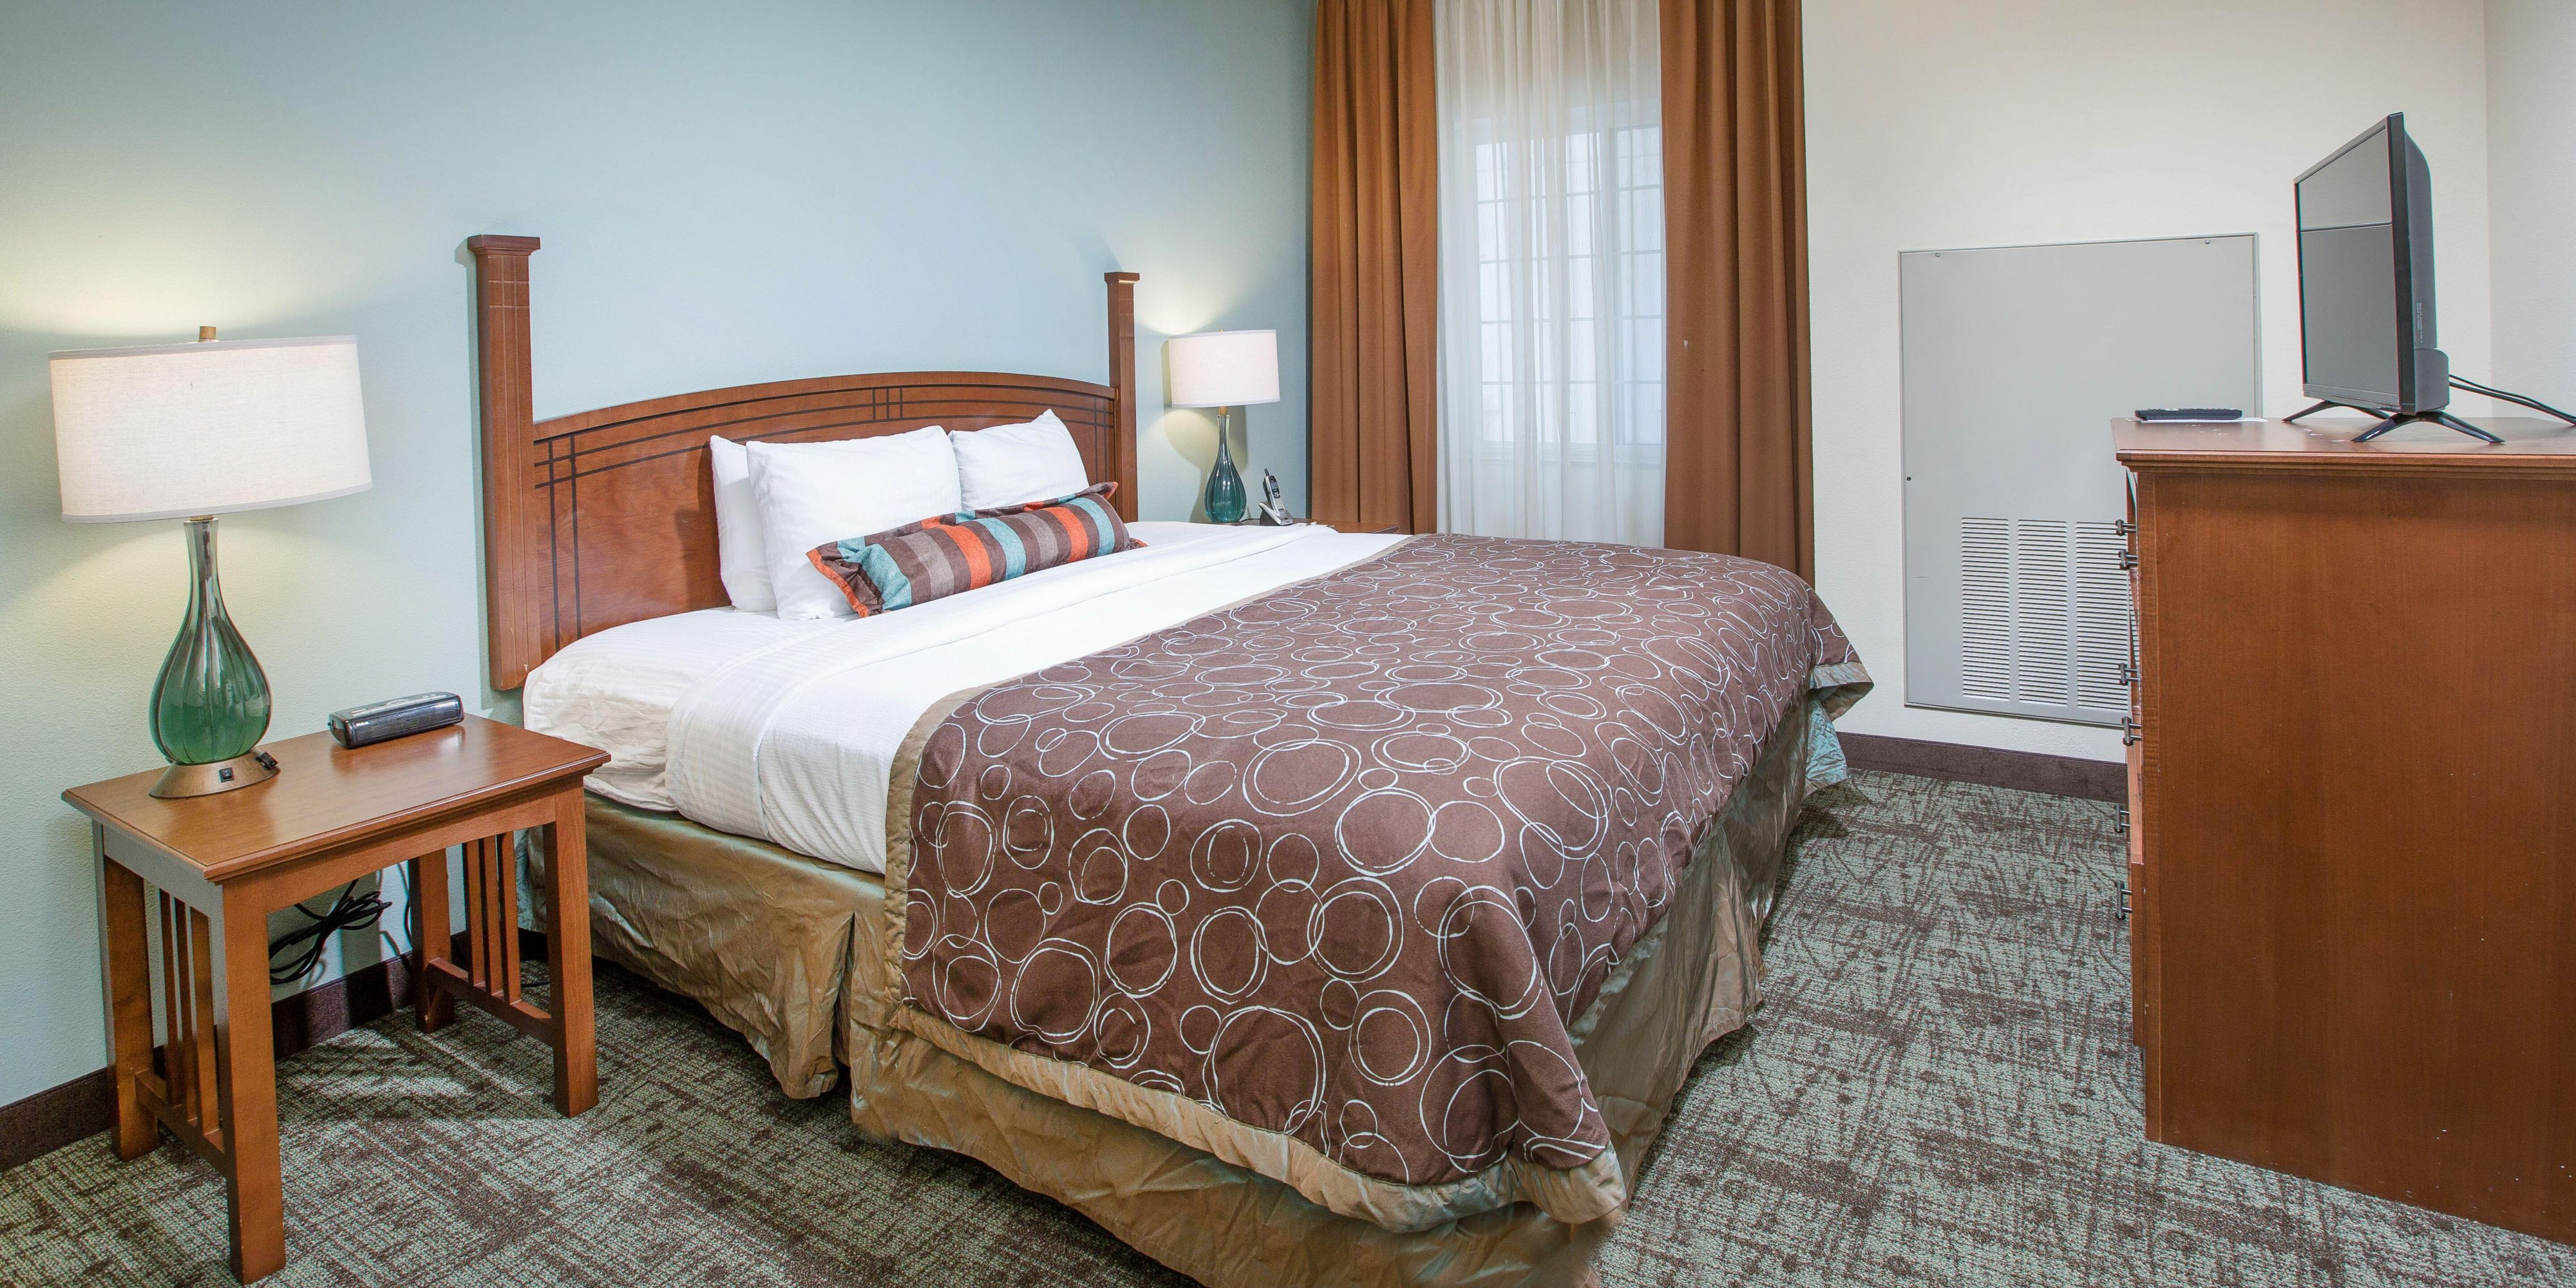 staybridge suites augusta bed